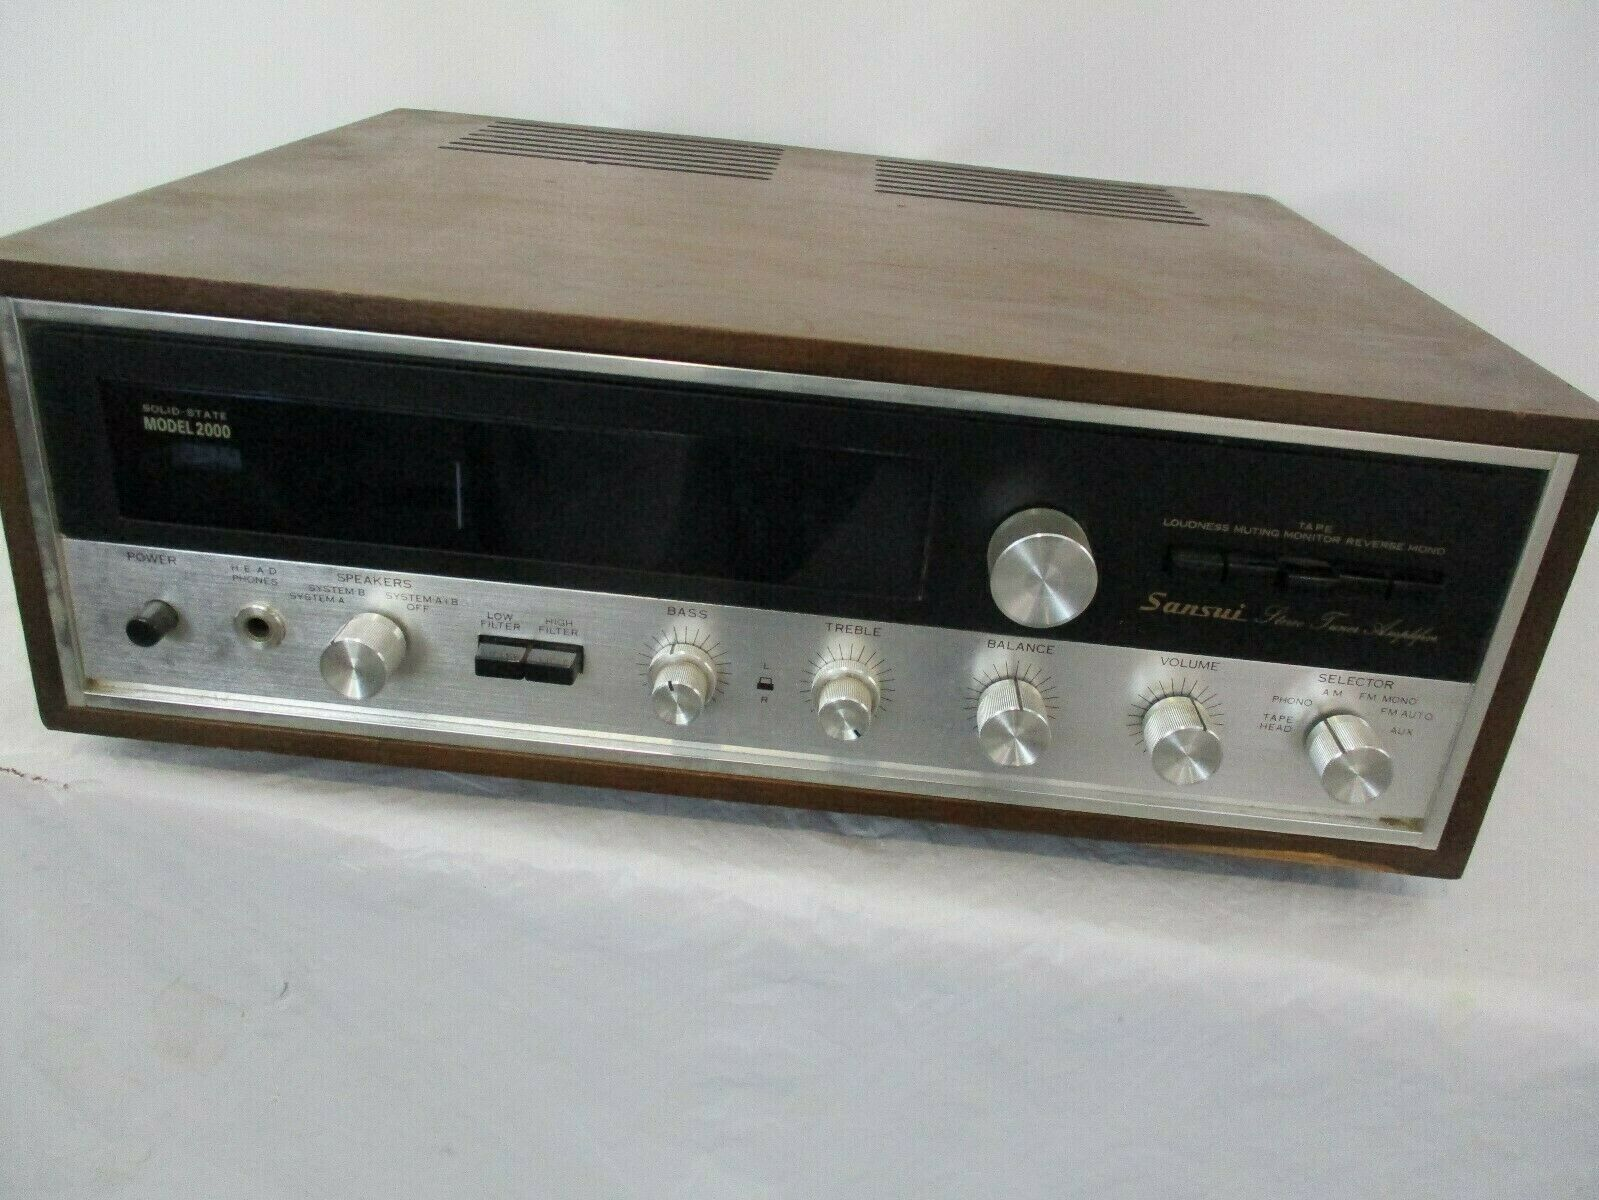 Vintage Sansui AM FM Stereo Reciever Model 2000 Solid State Amplifier